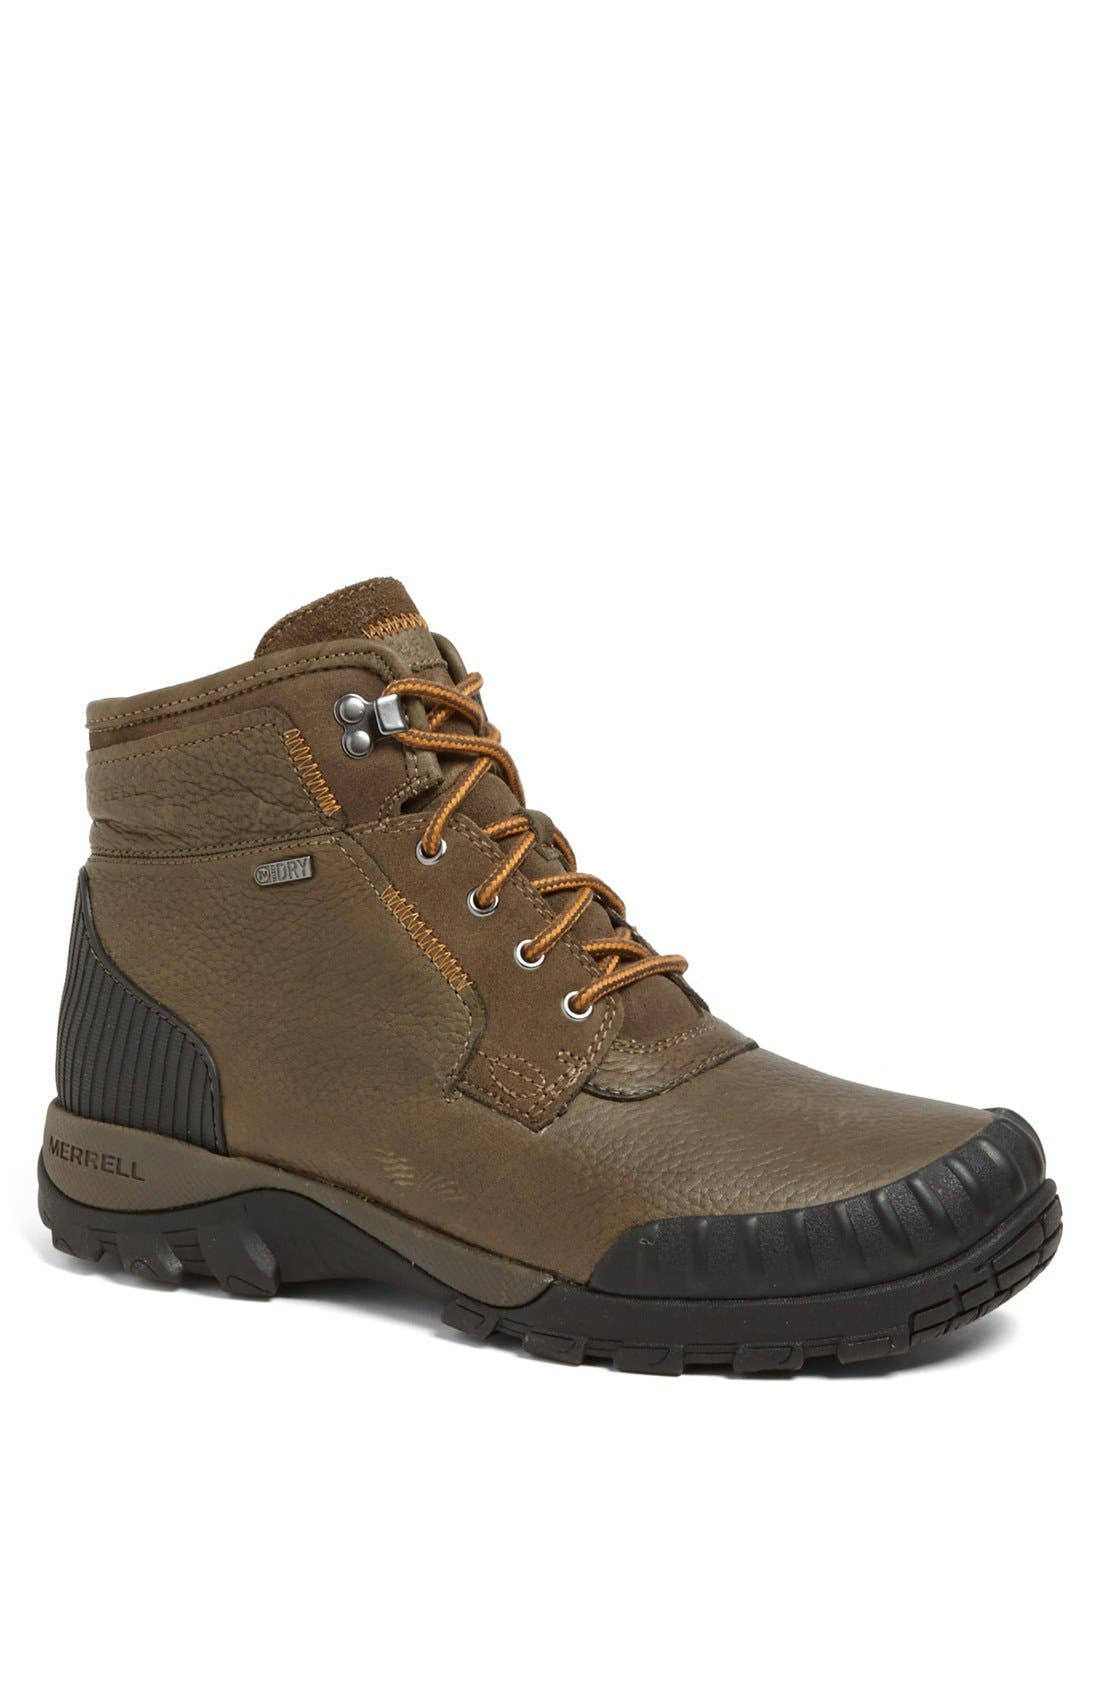 'Himavat' Waterproof Chukka Boot, Main, color, 200